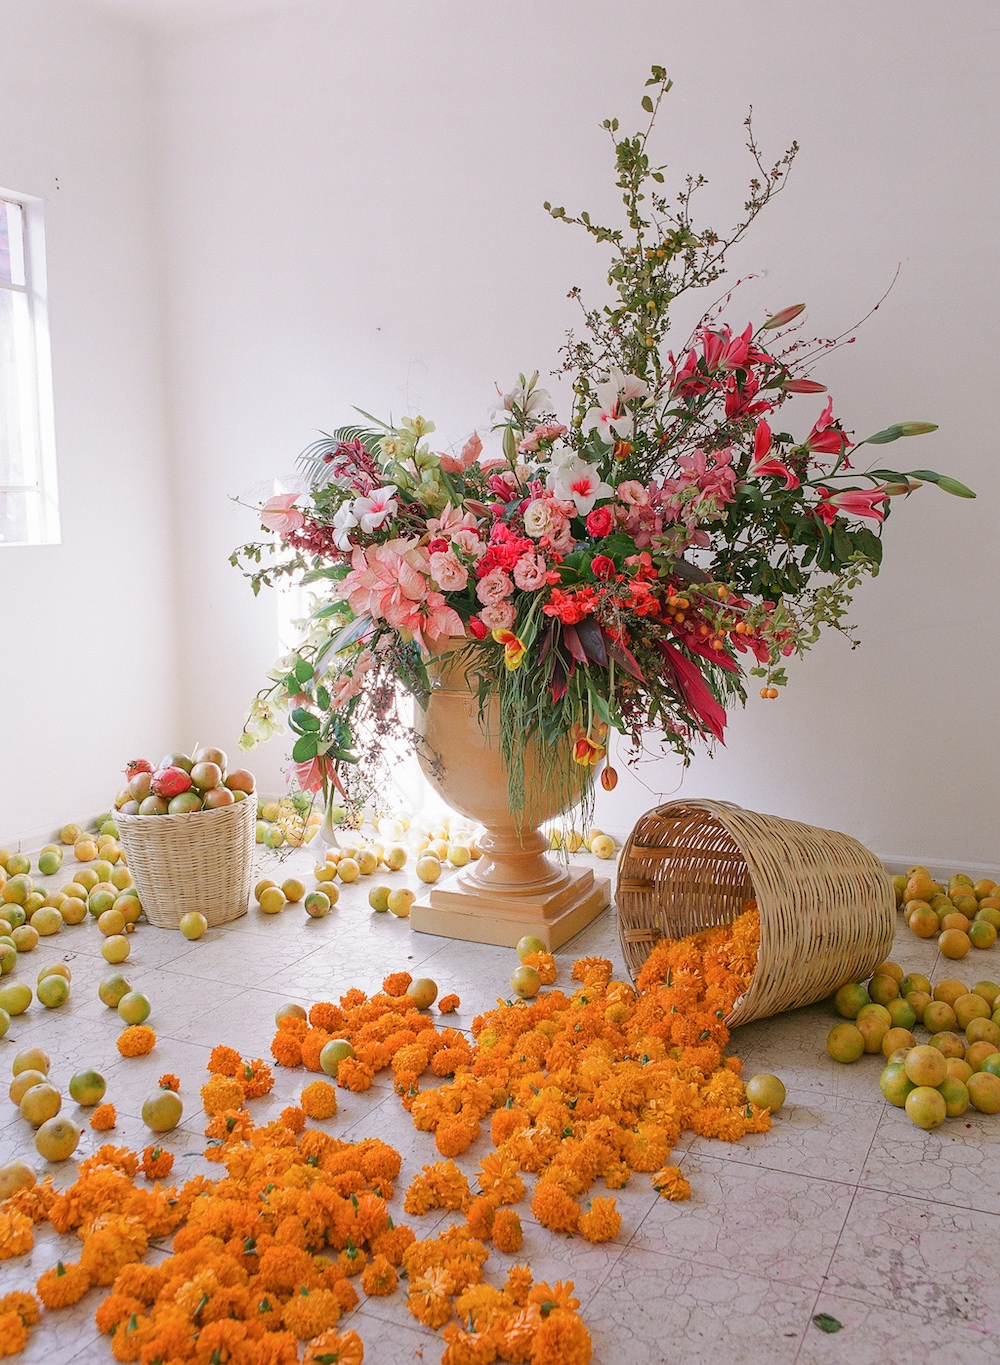 Mexico wouldn't be Mexico without marigolds and bright, bold colors. Lovely  Marianna  and our wonderful house chef  Coco  brought me all of the citrus for this color filled installation in one of the rooms.